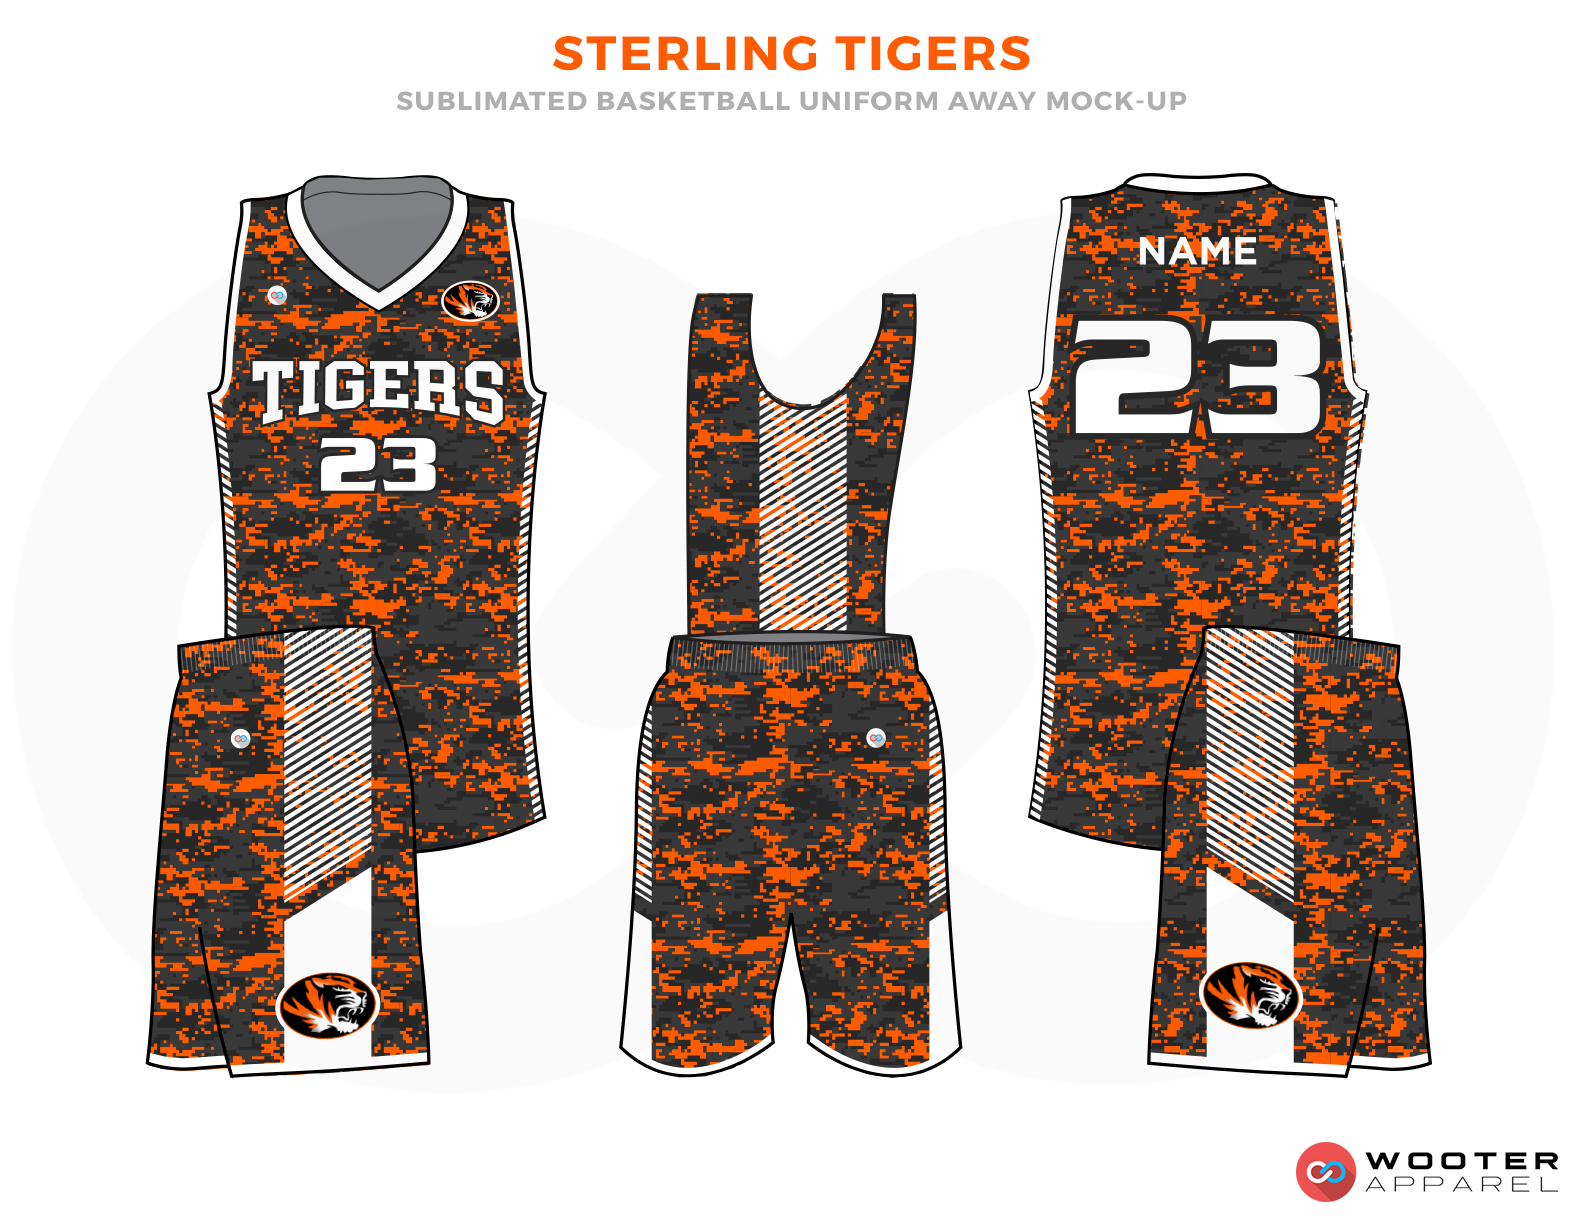 STERLING TIGERS Orange Grey and White Basketball Uniforms, Jersey and Shorts